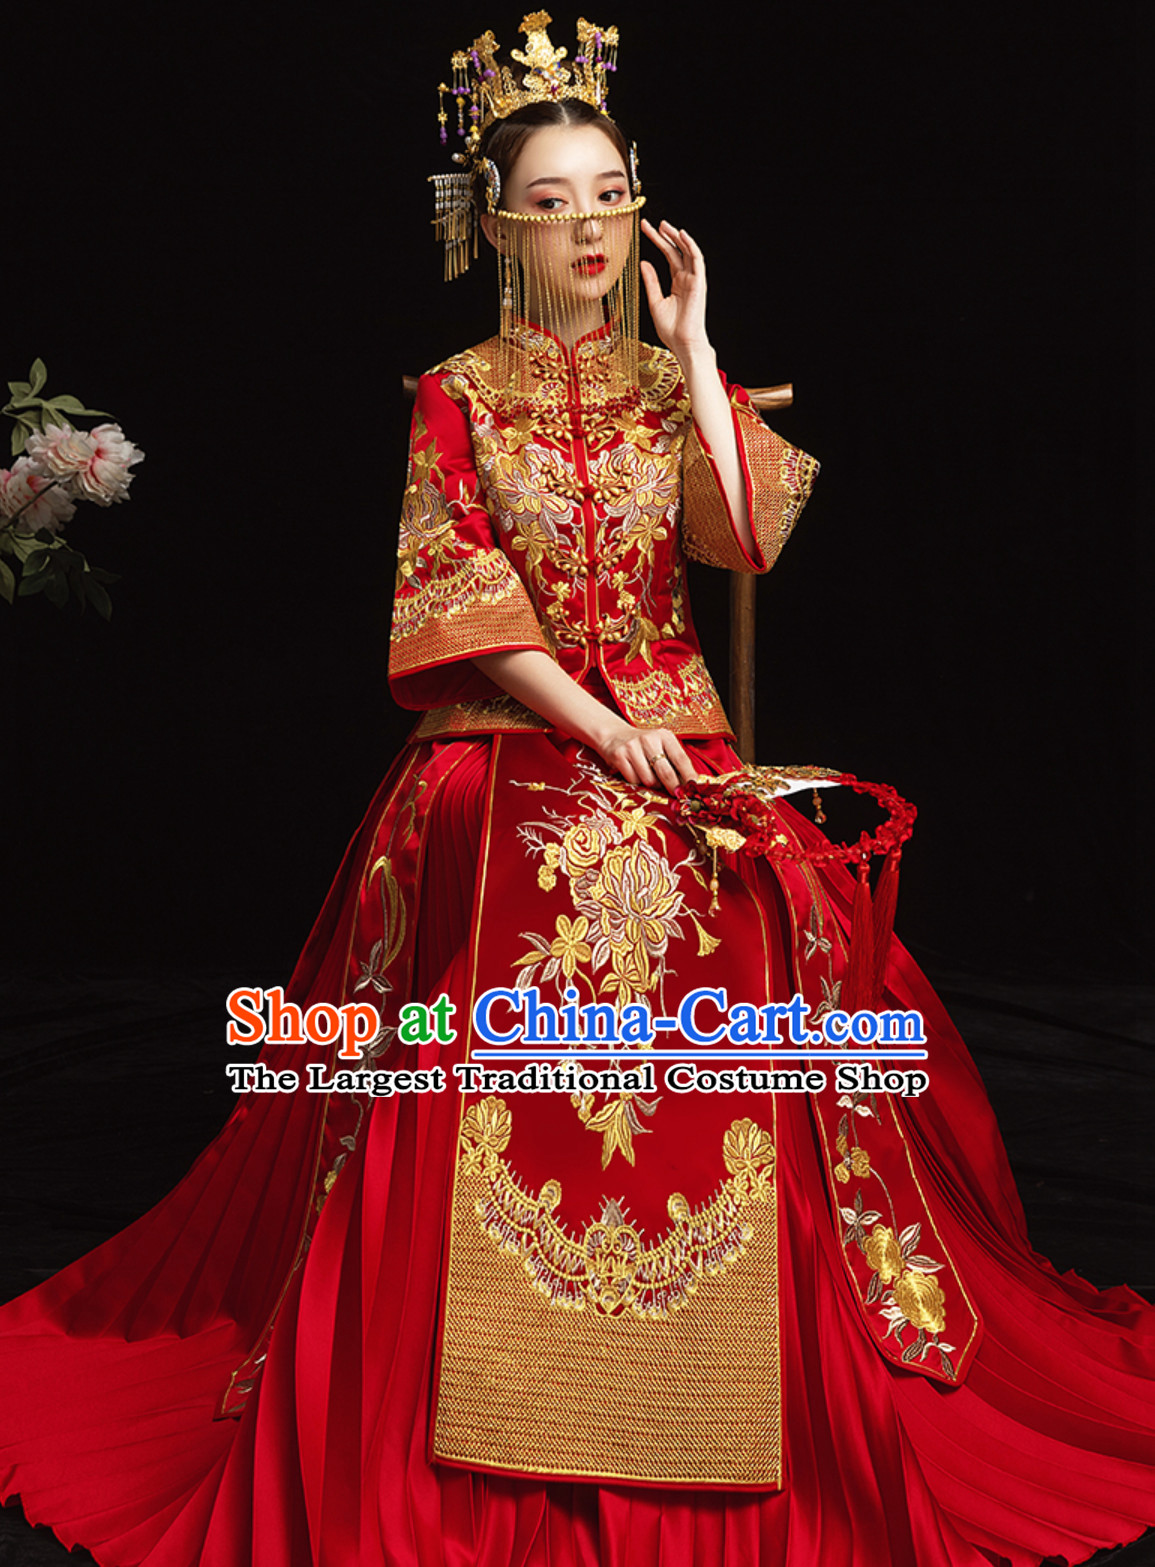 Top Chinese Empress Design Beautiful Bride Wedding Clothing for Women